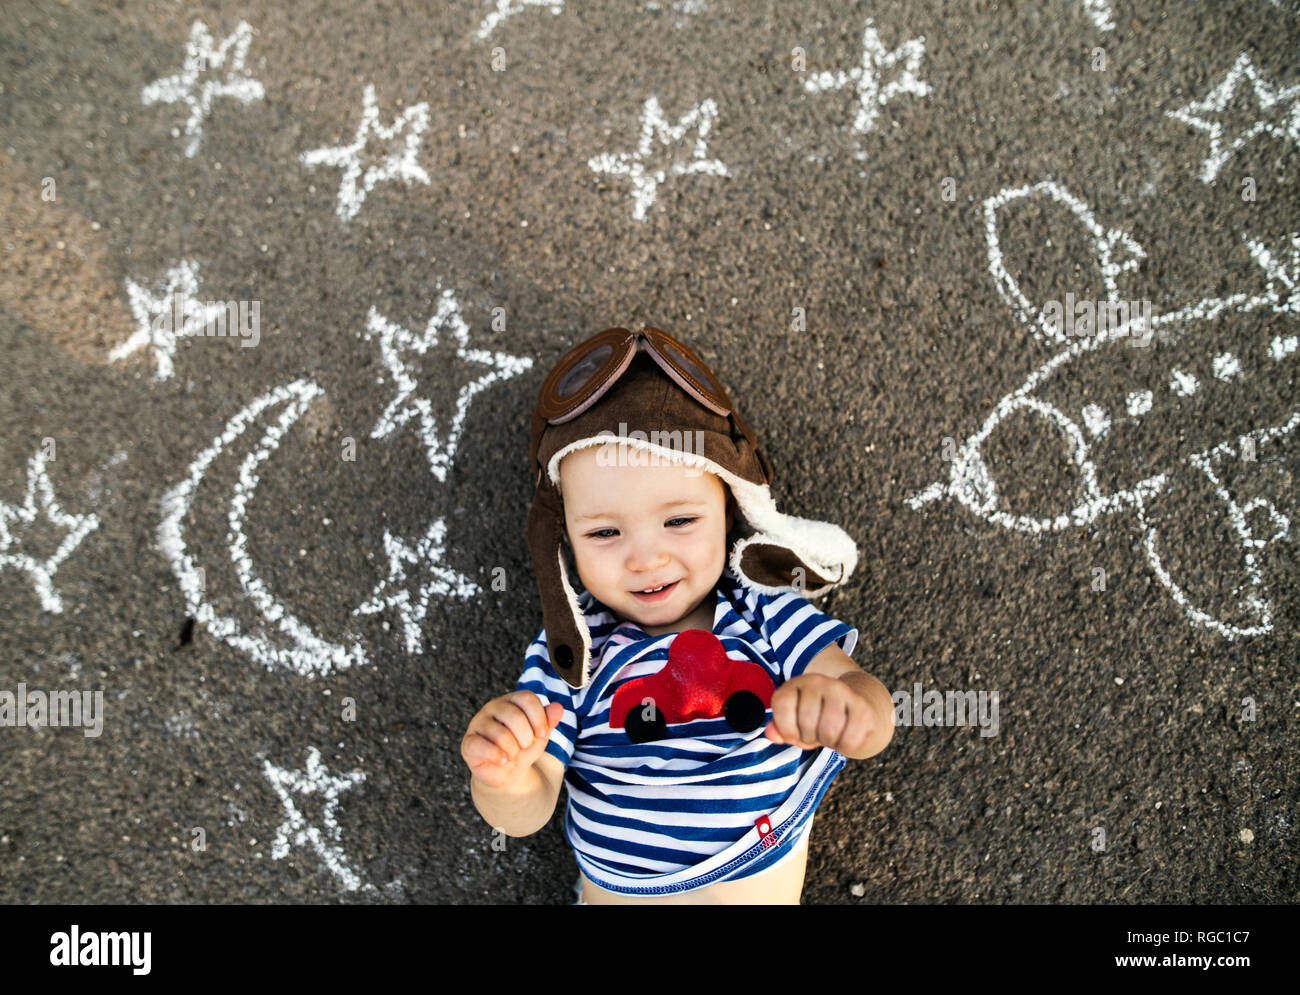 Portrait of smiling baby girl wearing pilot hat lying on asphalt painted with airplane, moon and stars - Stock Image